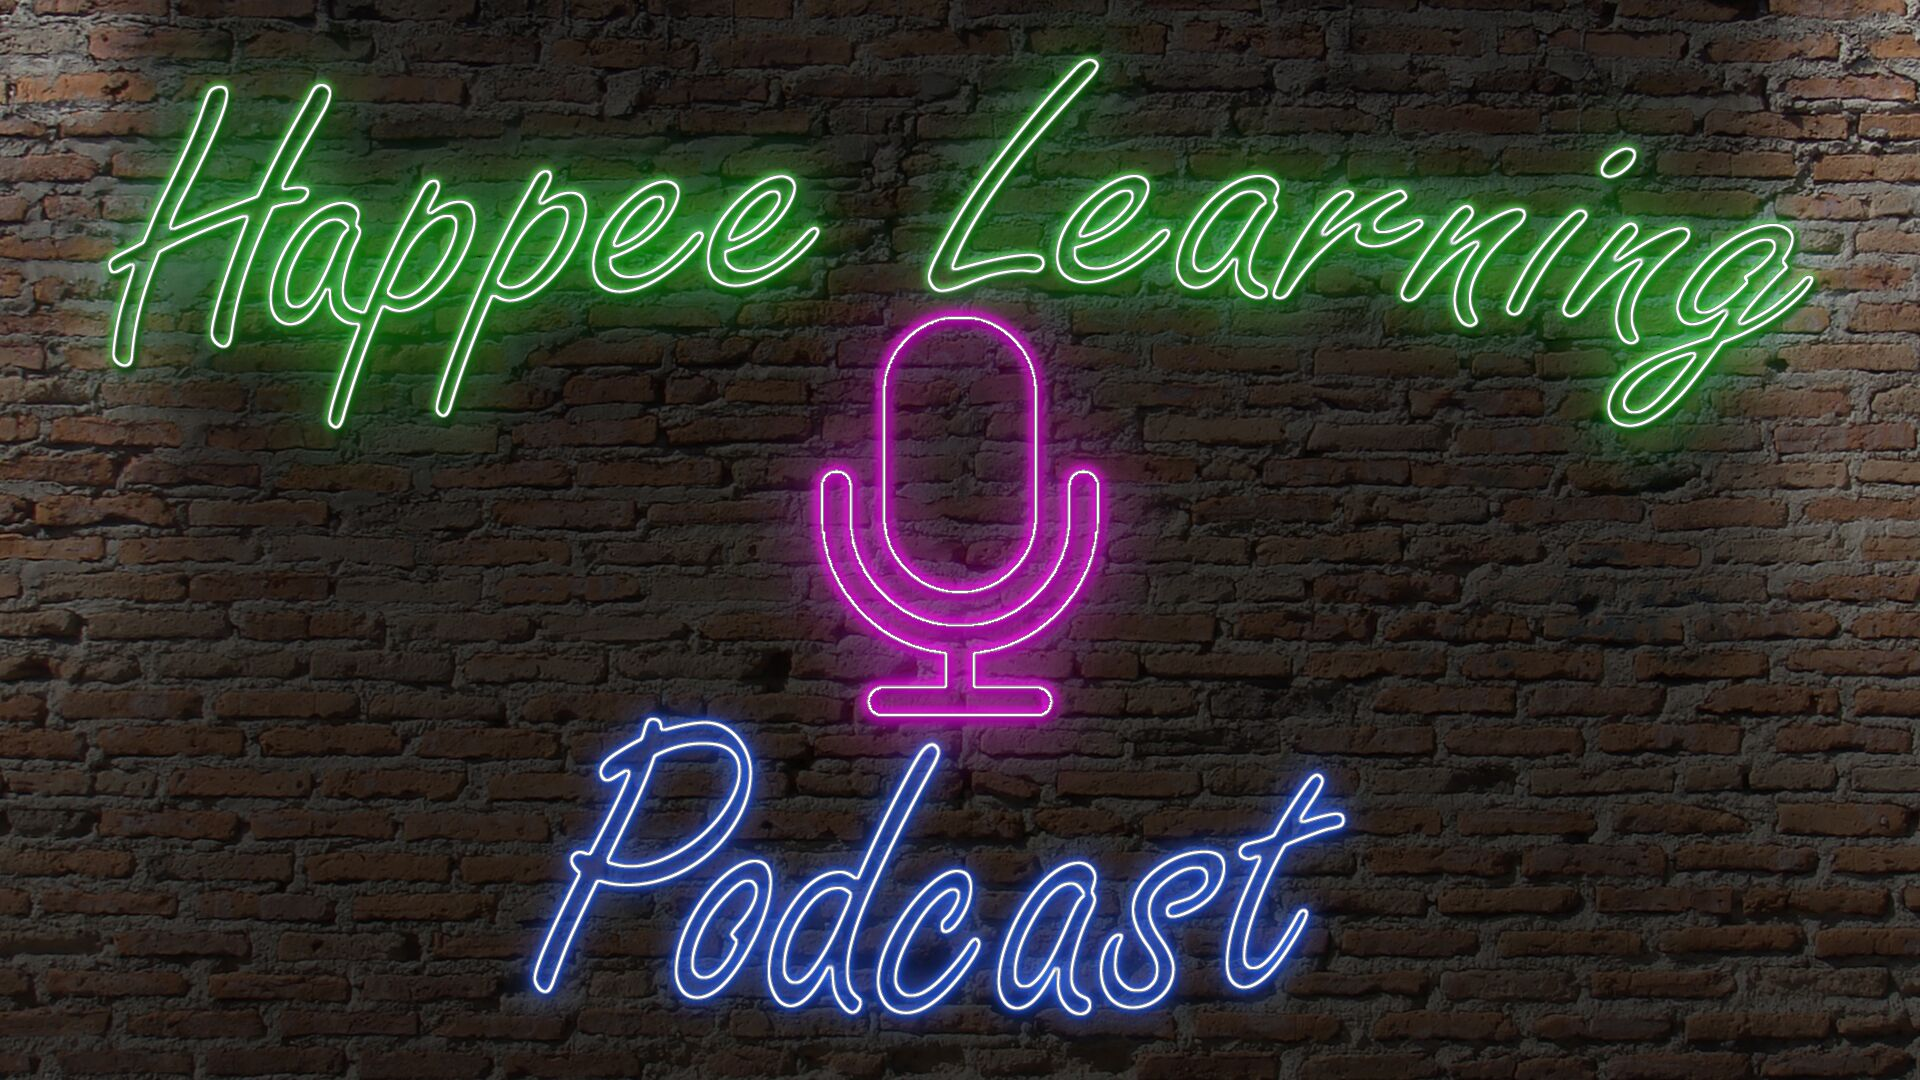 Les podcasts sur les sciences cognitives d'happee learning